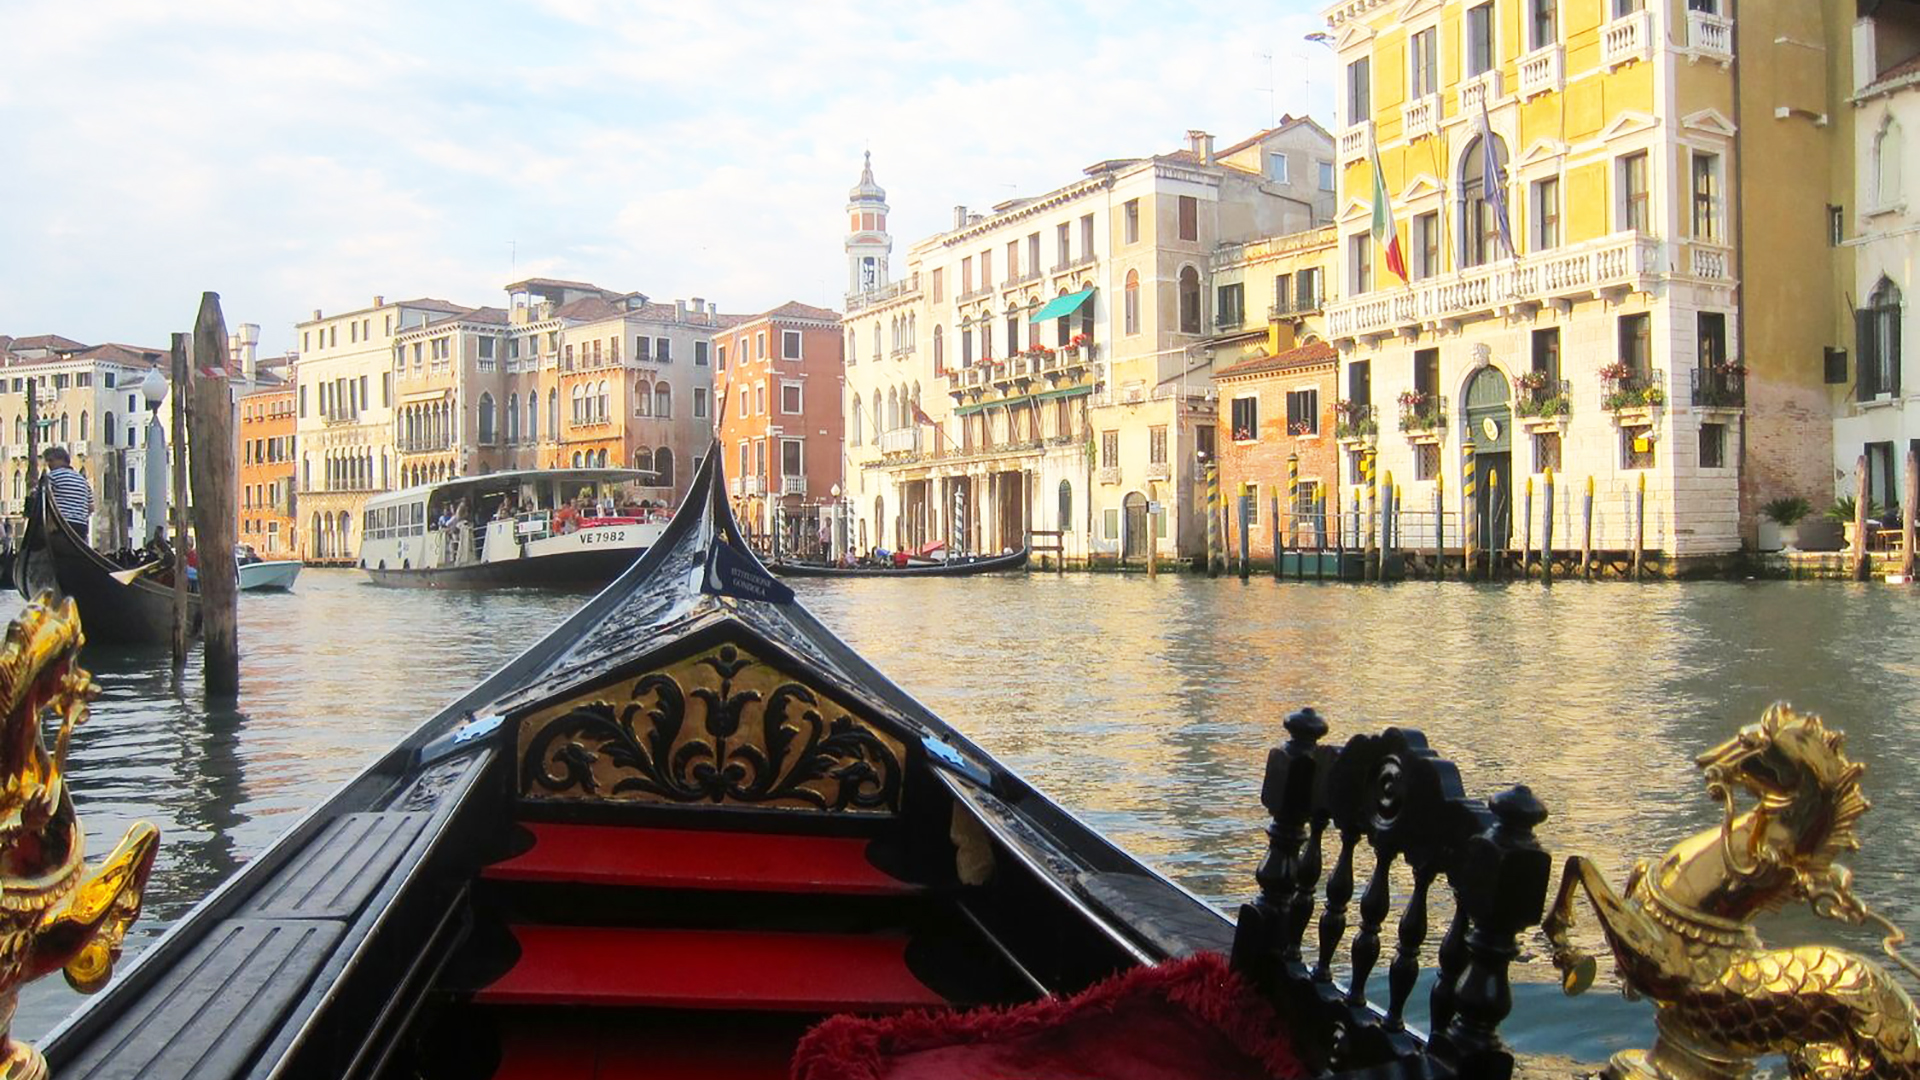 Gondola ride in Venice. Virtual background to use on Zoom, Microsoft Teams, Skype, Google Meet, WebEx or any other compatible app.